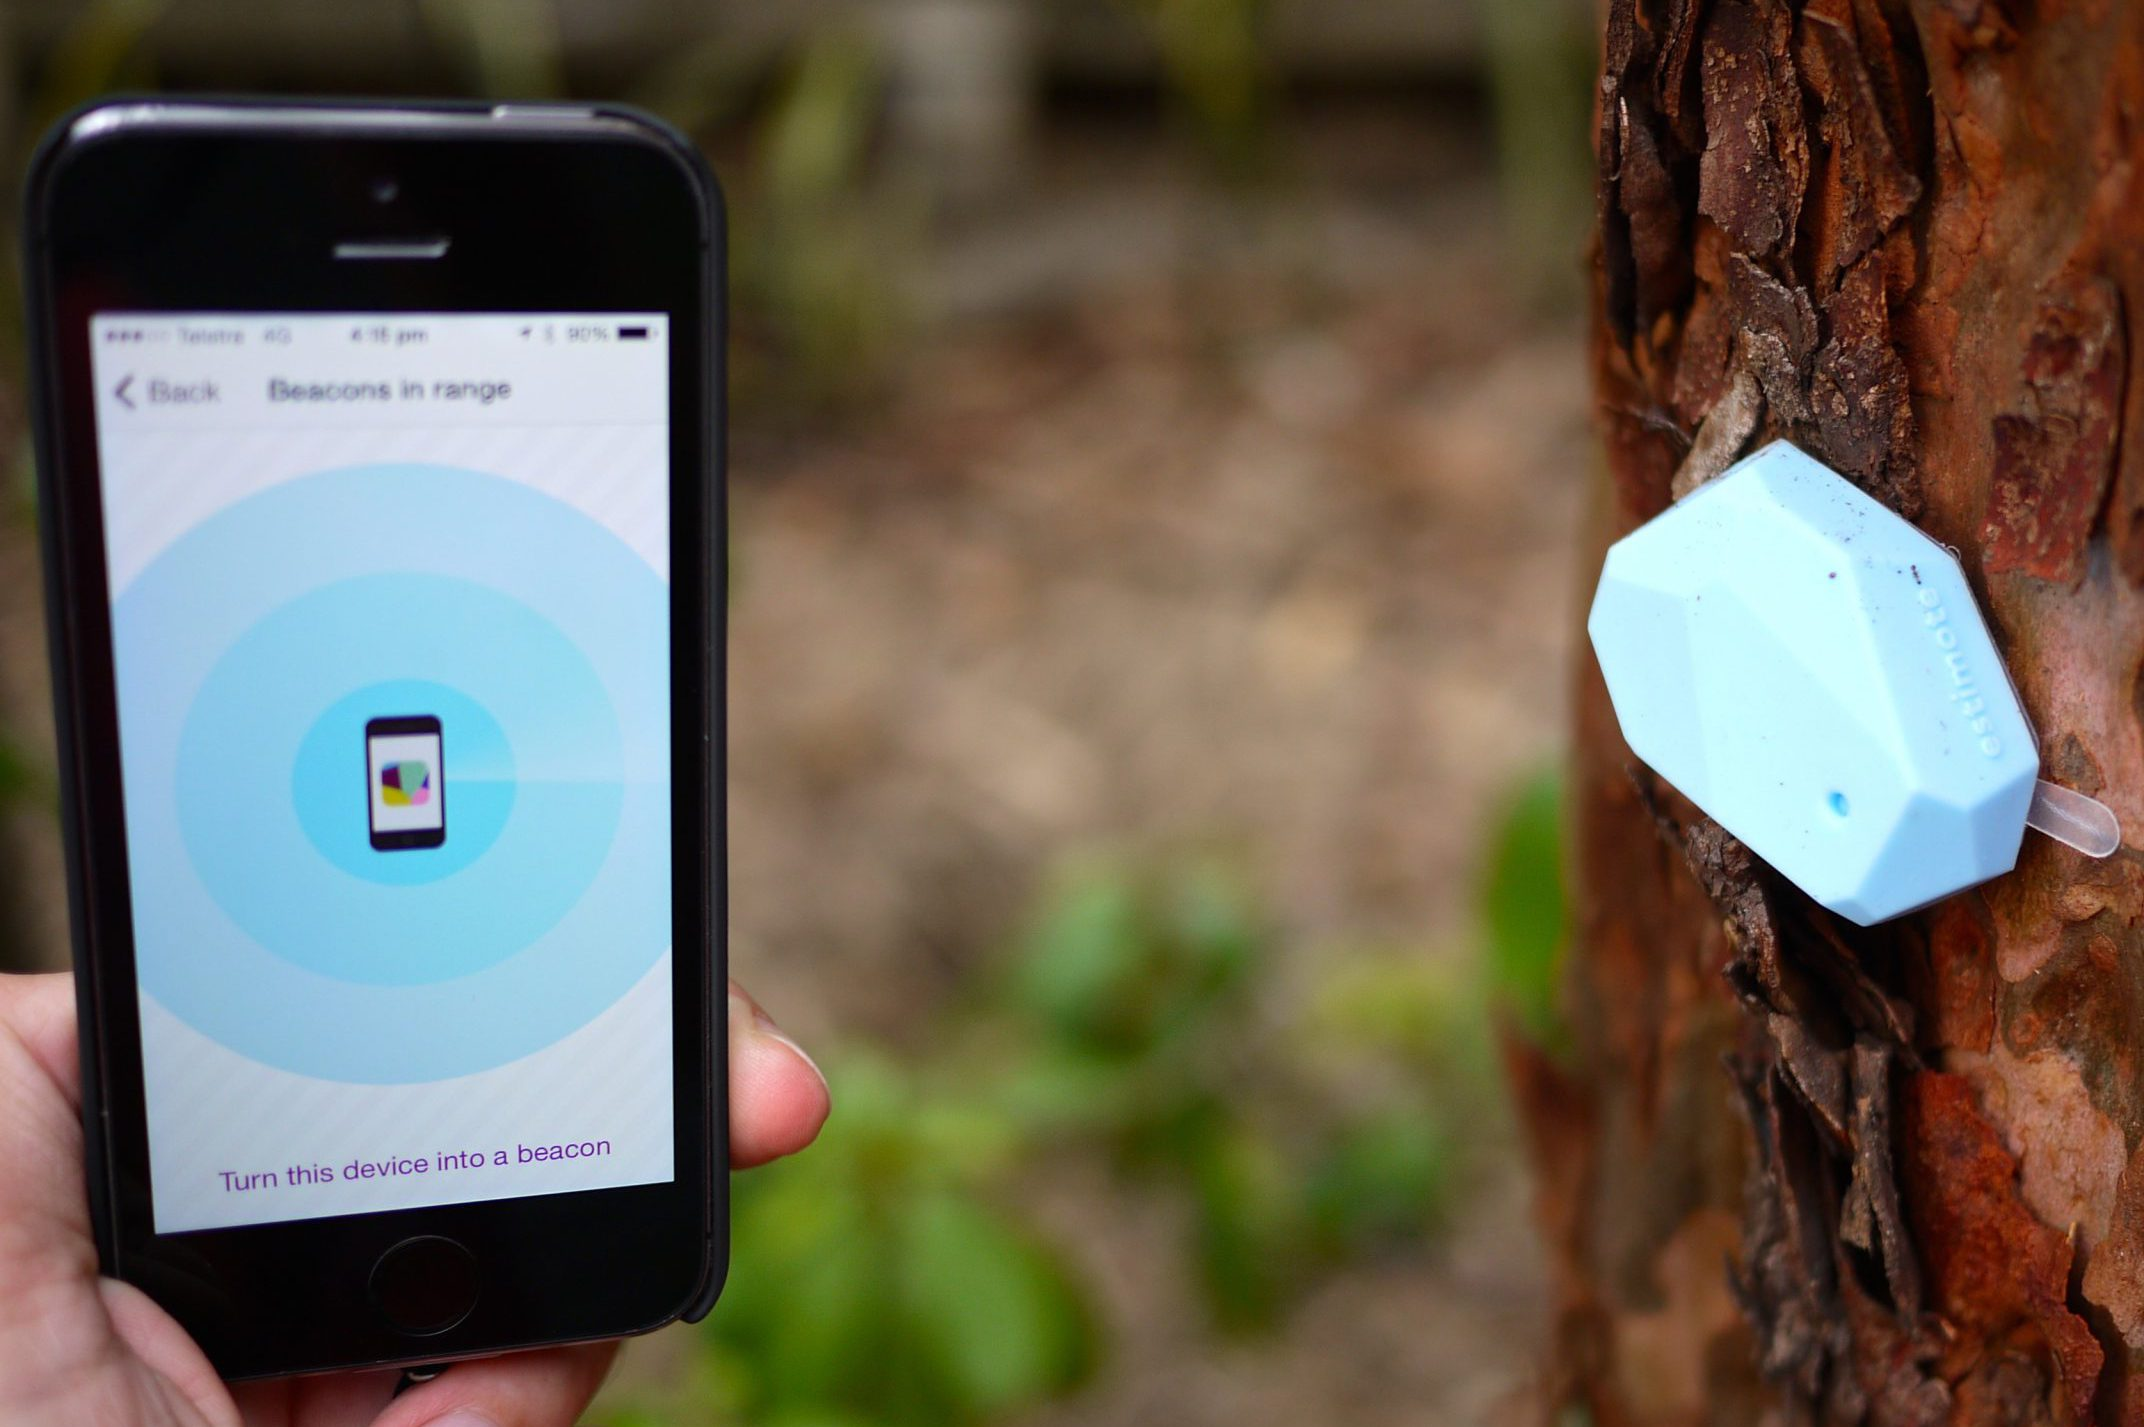 What You Must Know About Bluetooth Beacons Before Purchasing